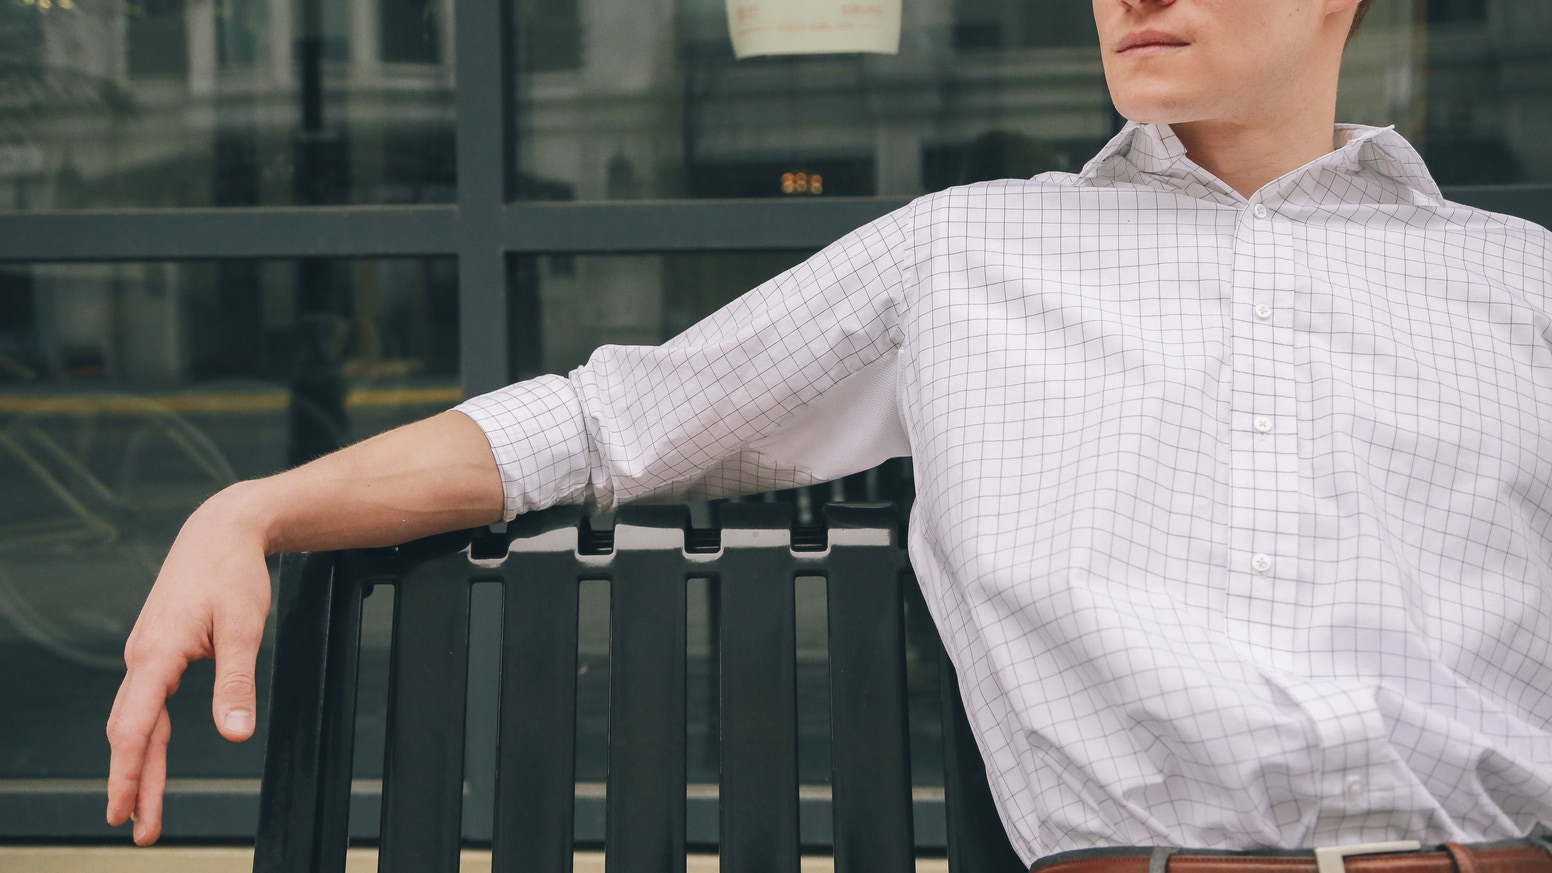 d96ed234ad The first dress shirt to successfully blend 100% cotton with  moisture-wicking athletic wear